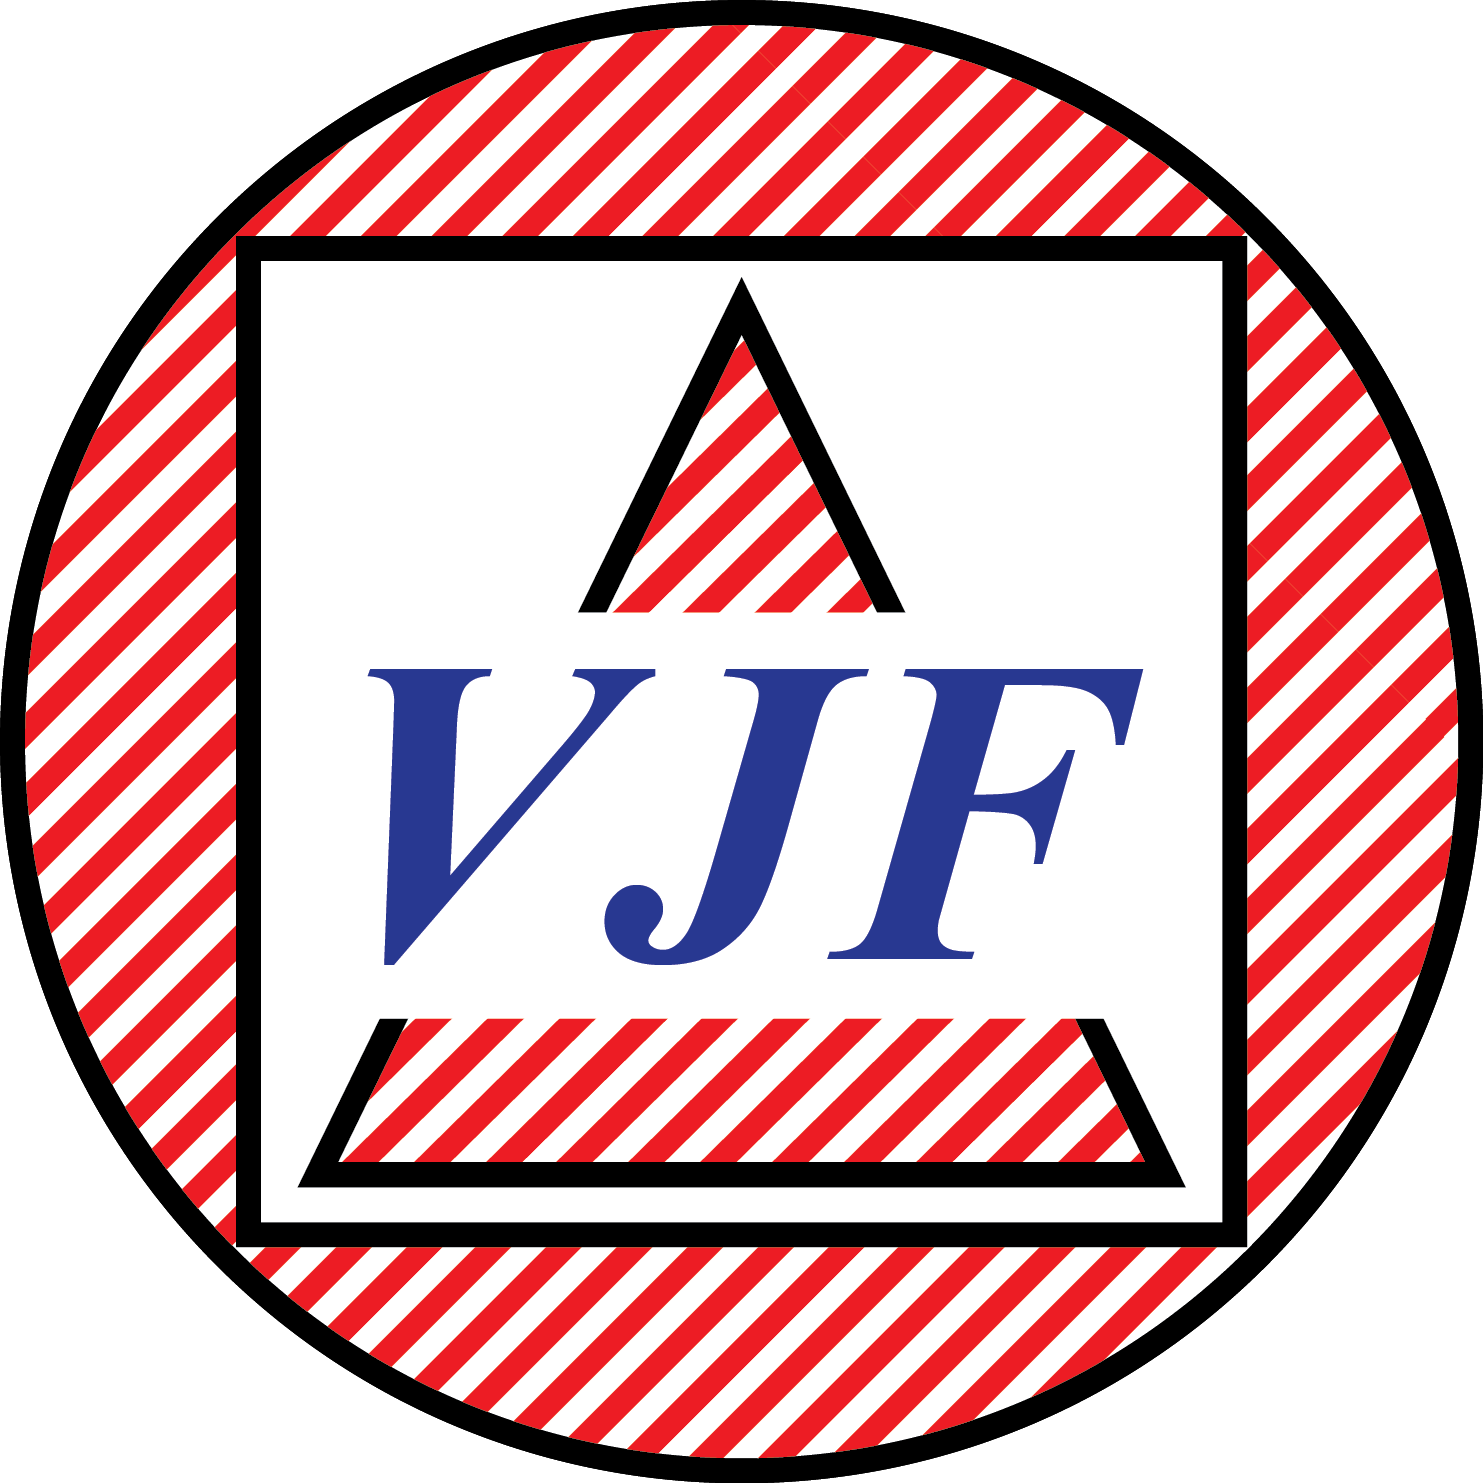 VJF Precision Toolings Corporation